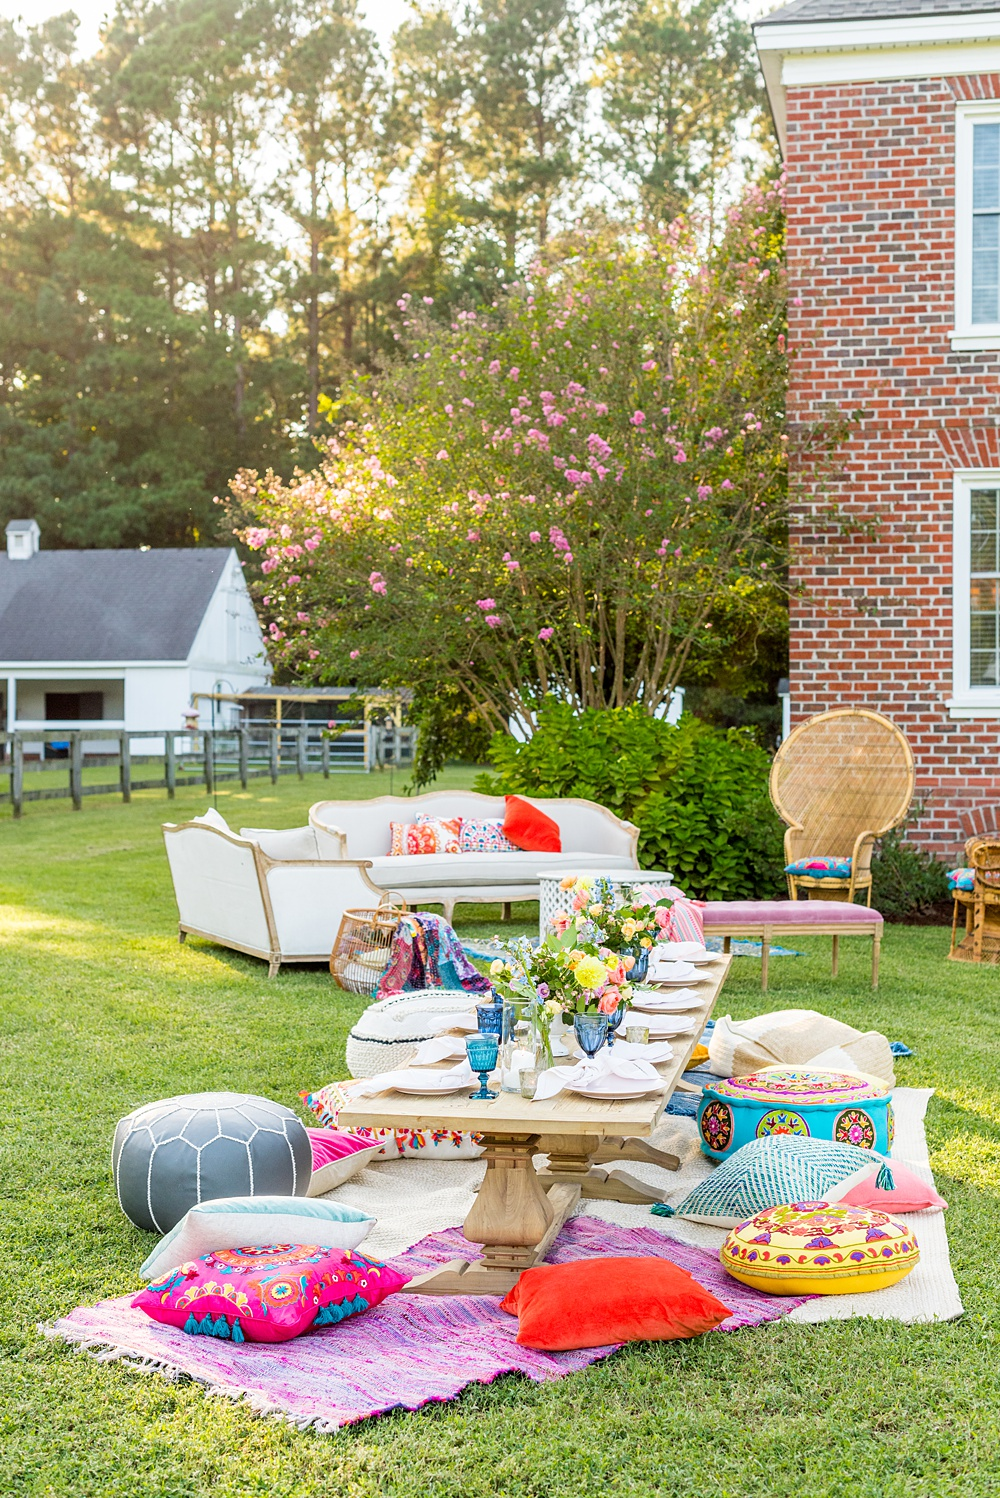 Step inside this colorful outdoor bohemian thirtieth birthday party. Full of color, lush garden flowers, and the yummiest vegan unicorn confetti cakes you ever did find! Click through for the details. Mikkel Paige Photography #gardenparty #birthdayparty #bohemianparty #unicornparty #styledshoot #backyardparty #flowers | glitterinc.com | @glitterinc